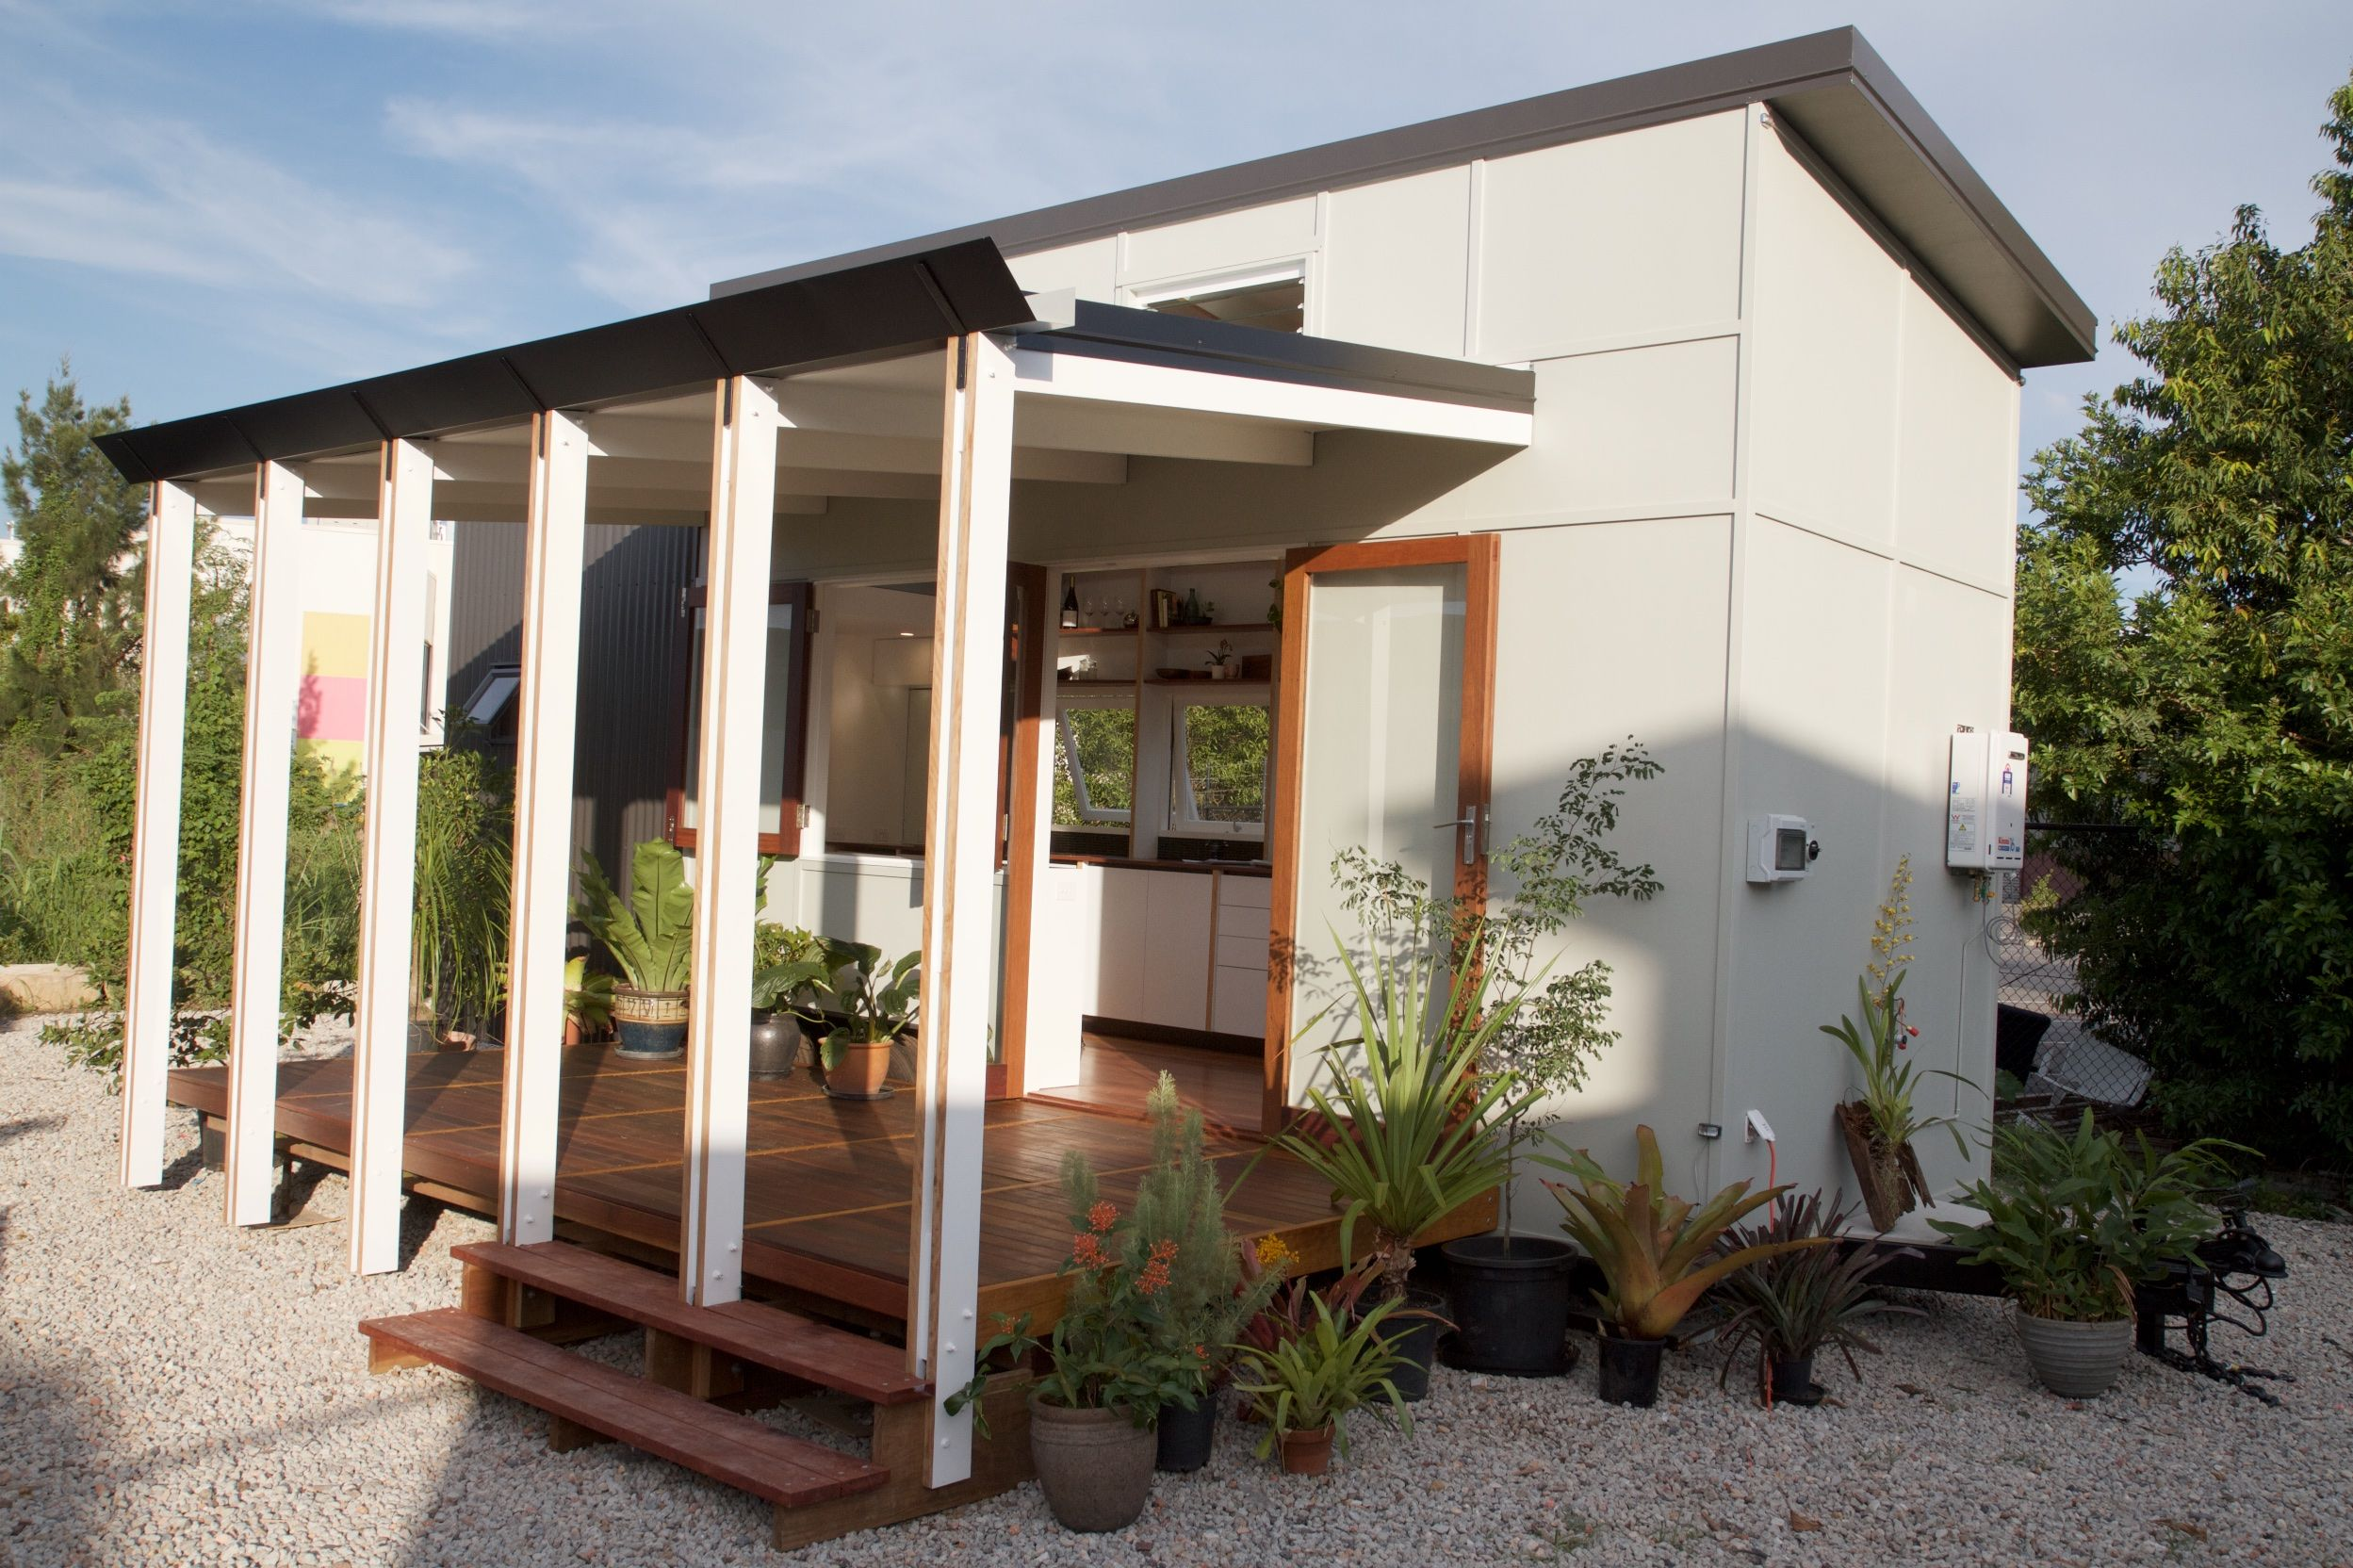 Tiny house on wheels designed and built for a subtropical climate ...